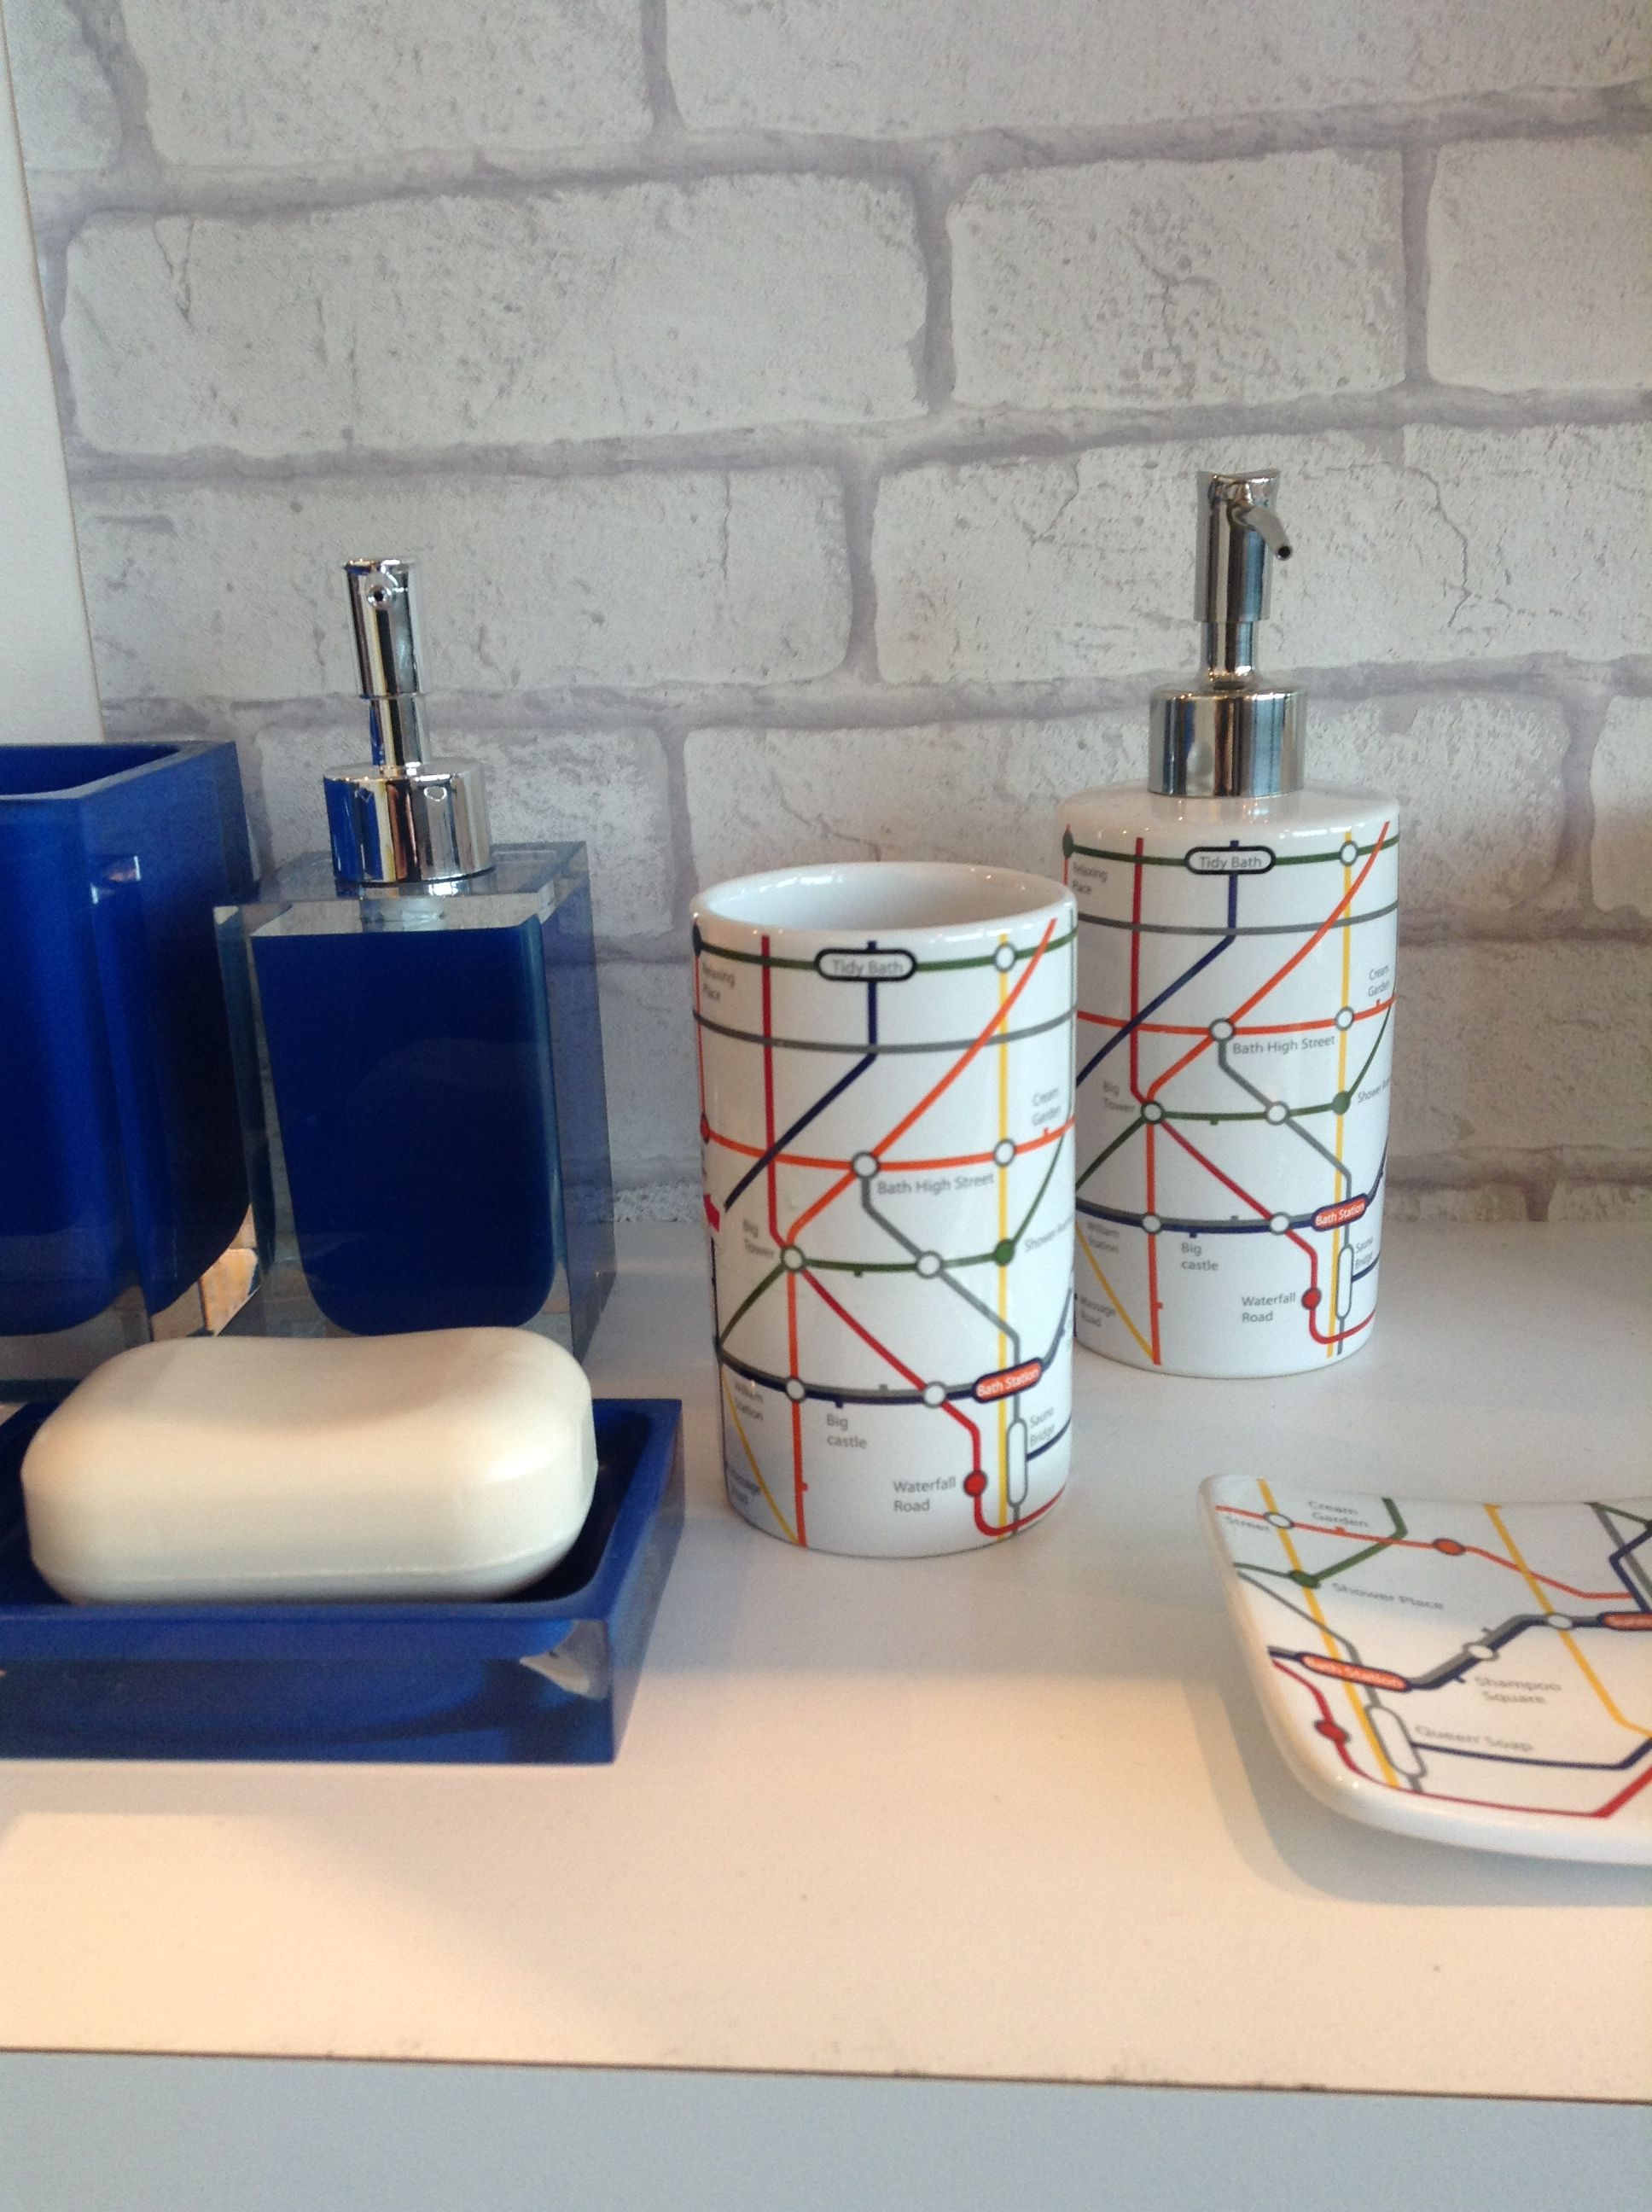 Stylish Gloss Blue And London Tube Inspired Bathroom Accessories. #bathroom